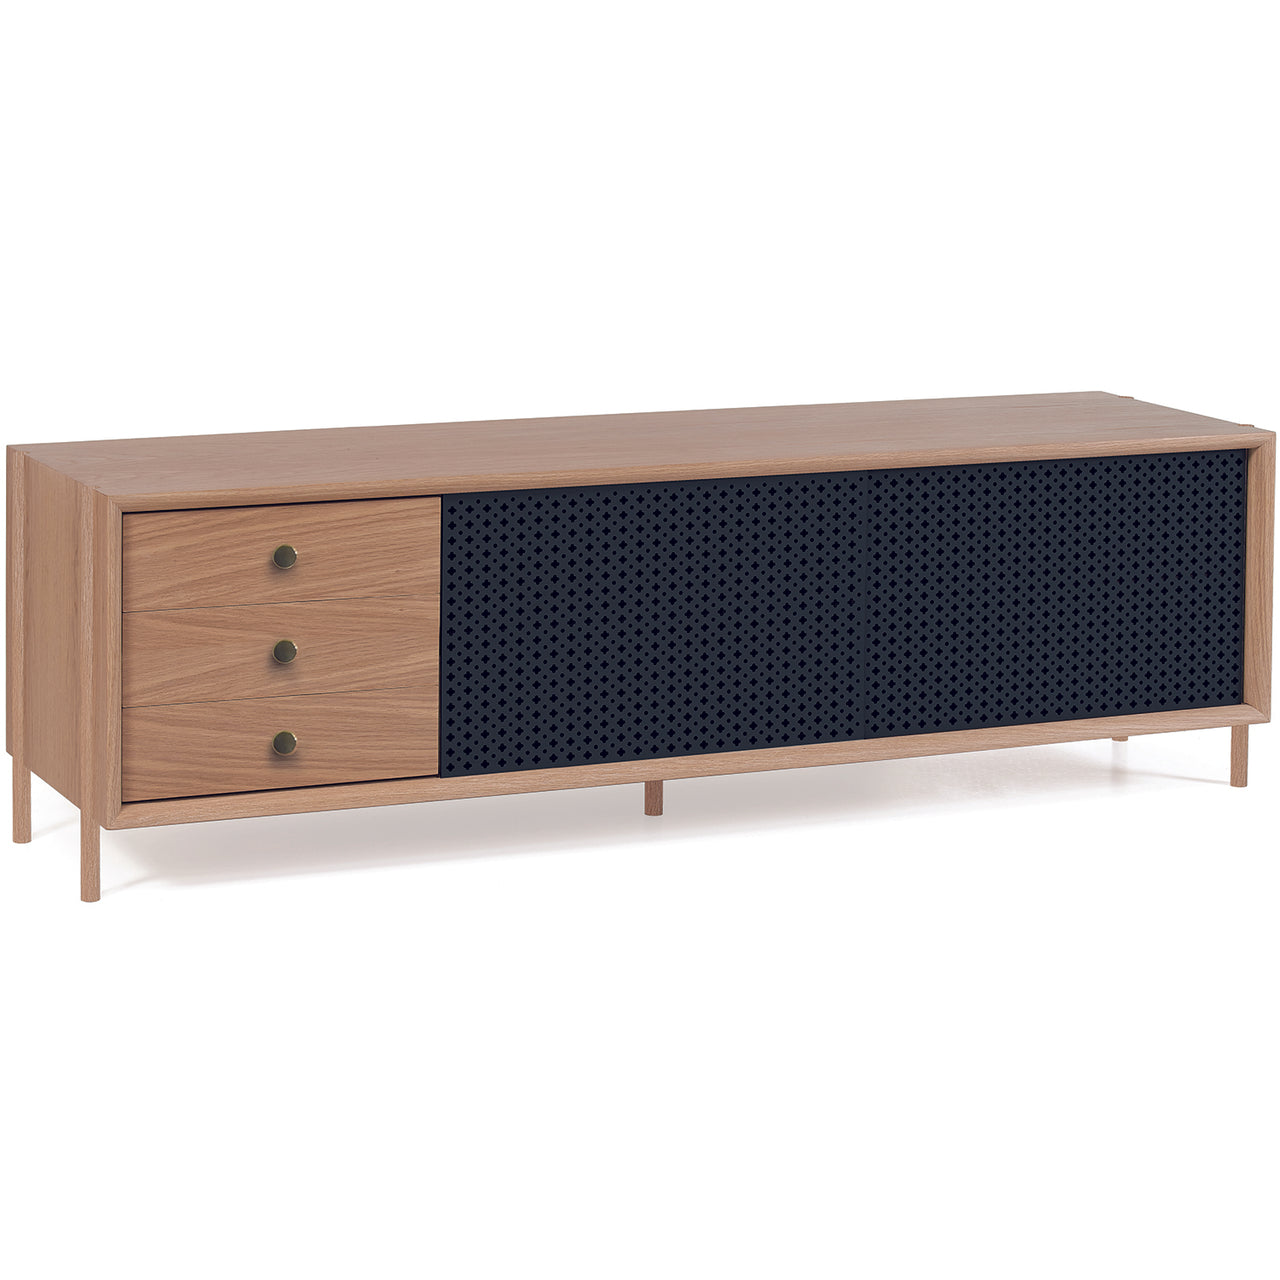 Gabin Sideboard: Large: Large with Drawers + Oak + Slate Grey